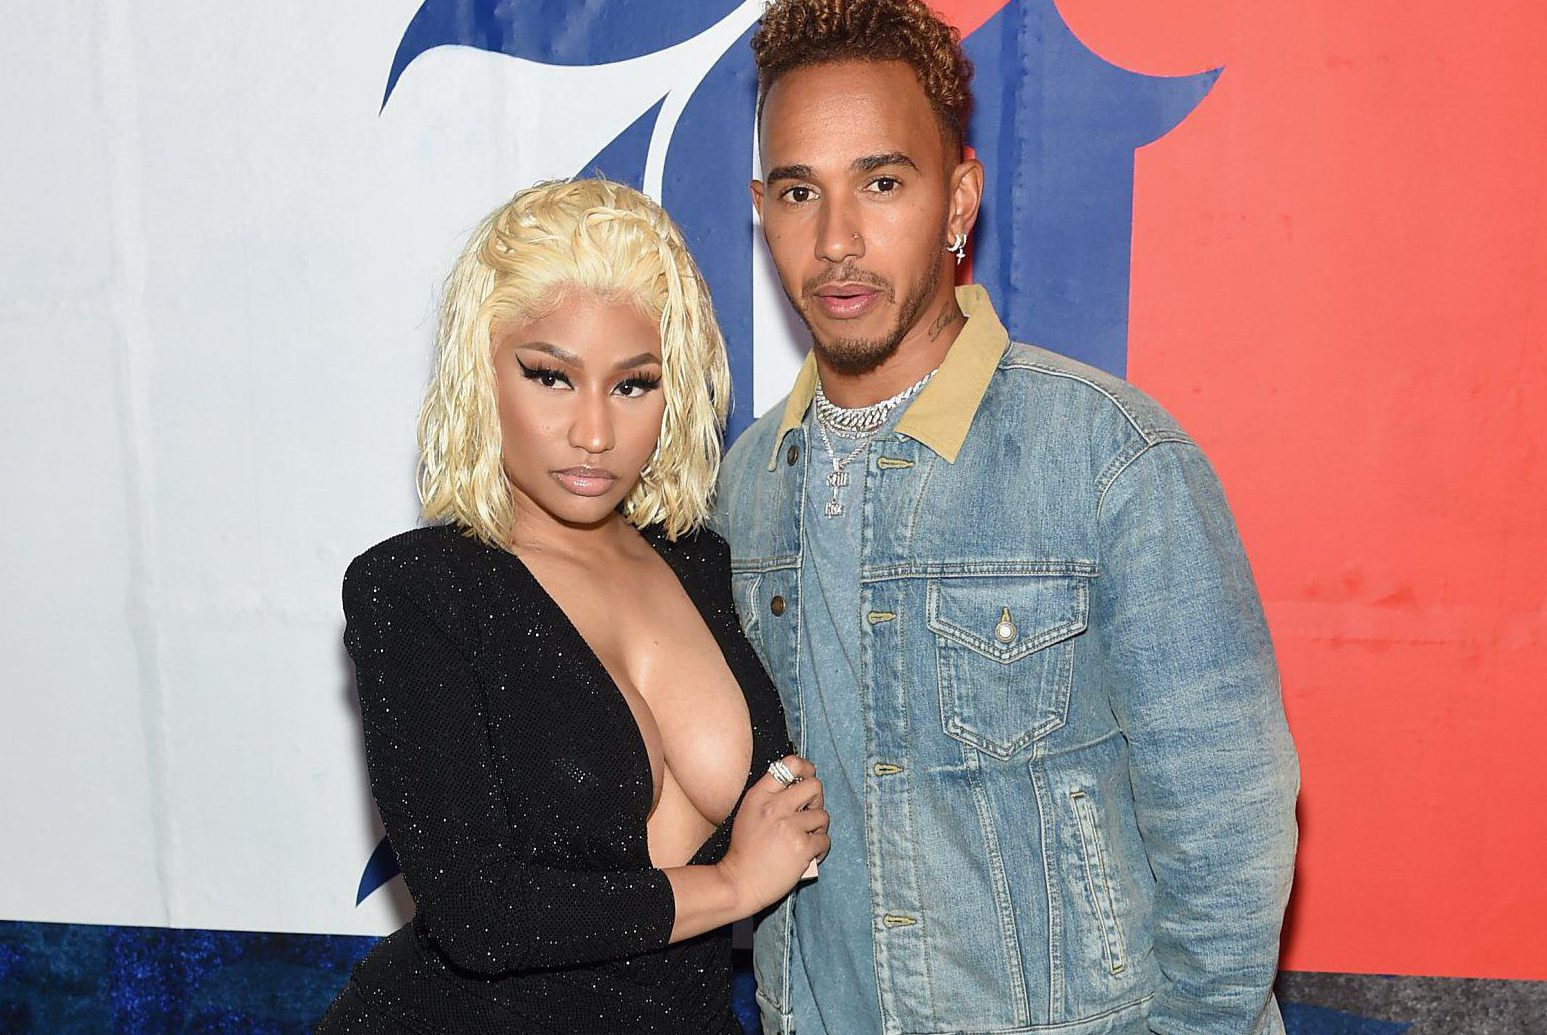 Nicki Minaj and Lewis Hamilton spark dating rumours with Instagram flirting and we're obsessed